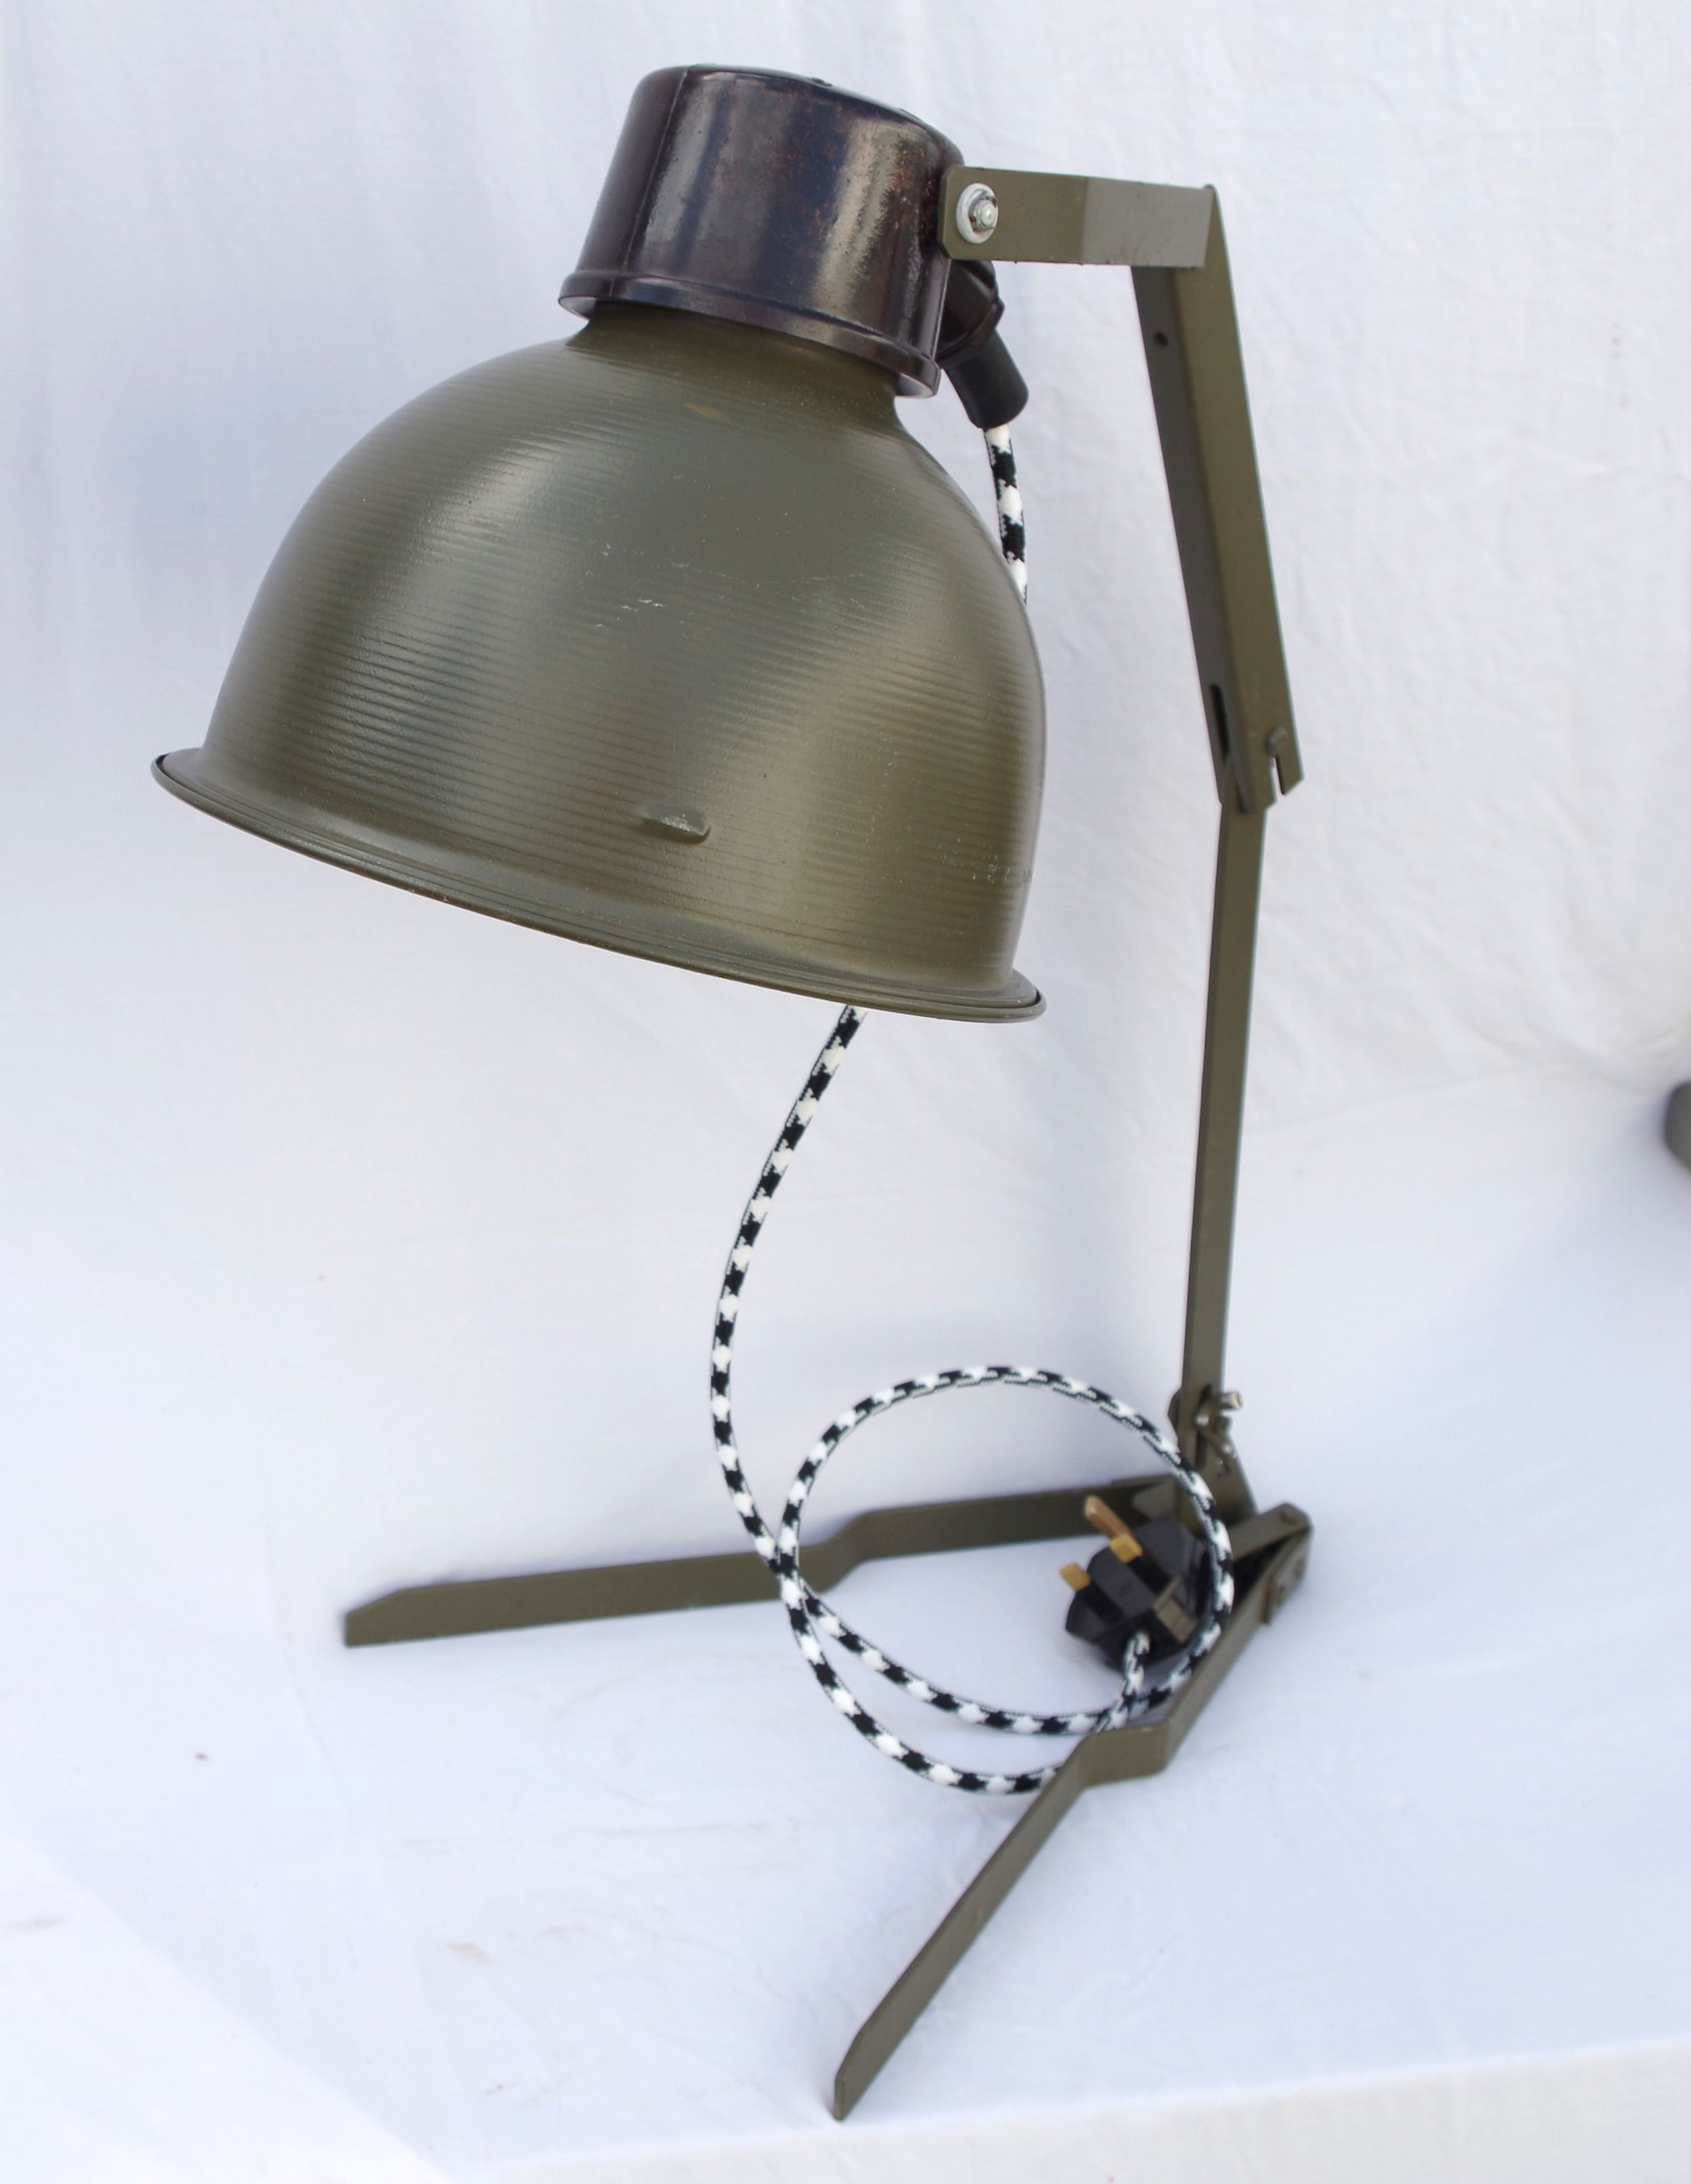 genuine rare vintage military desk lamp c1950s hobby room desk rh pinterest com